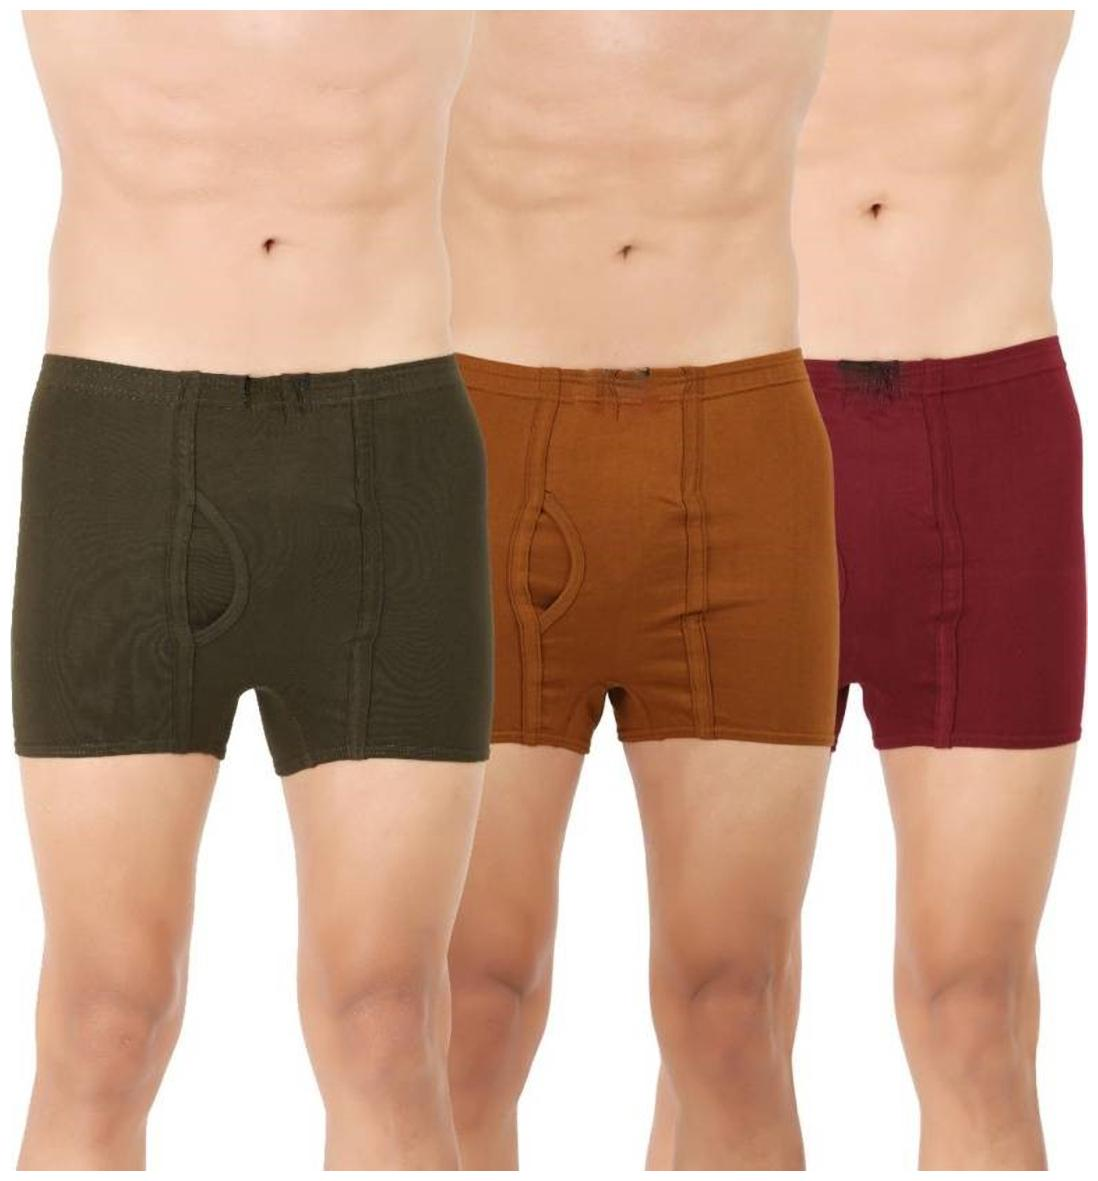 Super Trunks For Men Pack Of 3 by Clever Creations